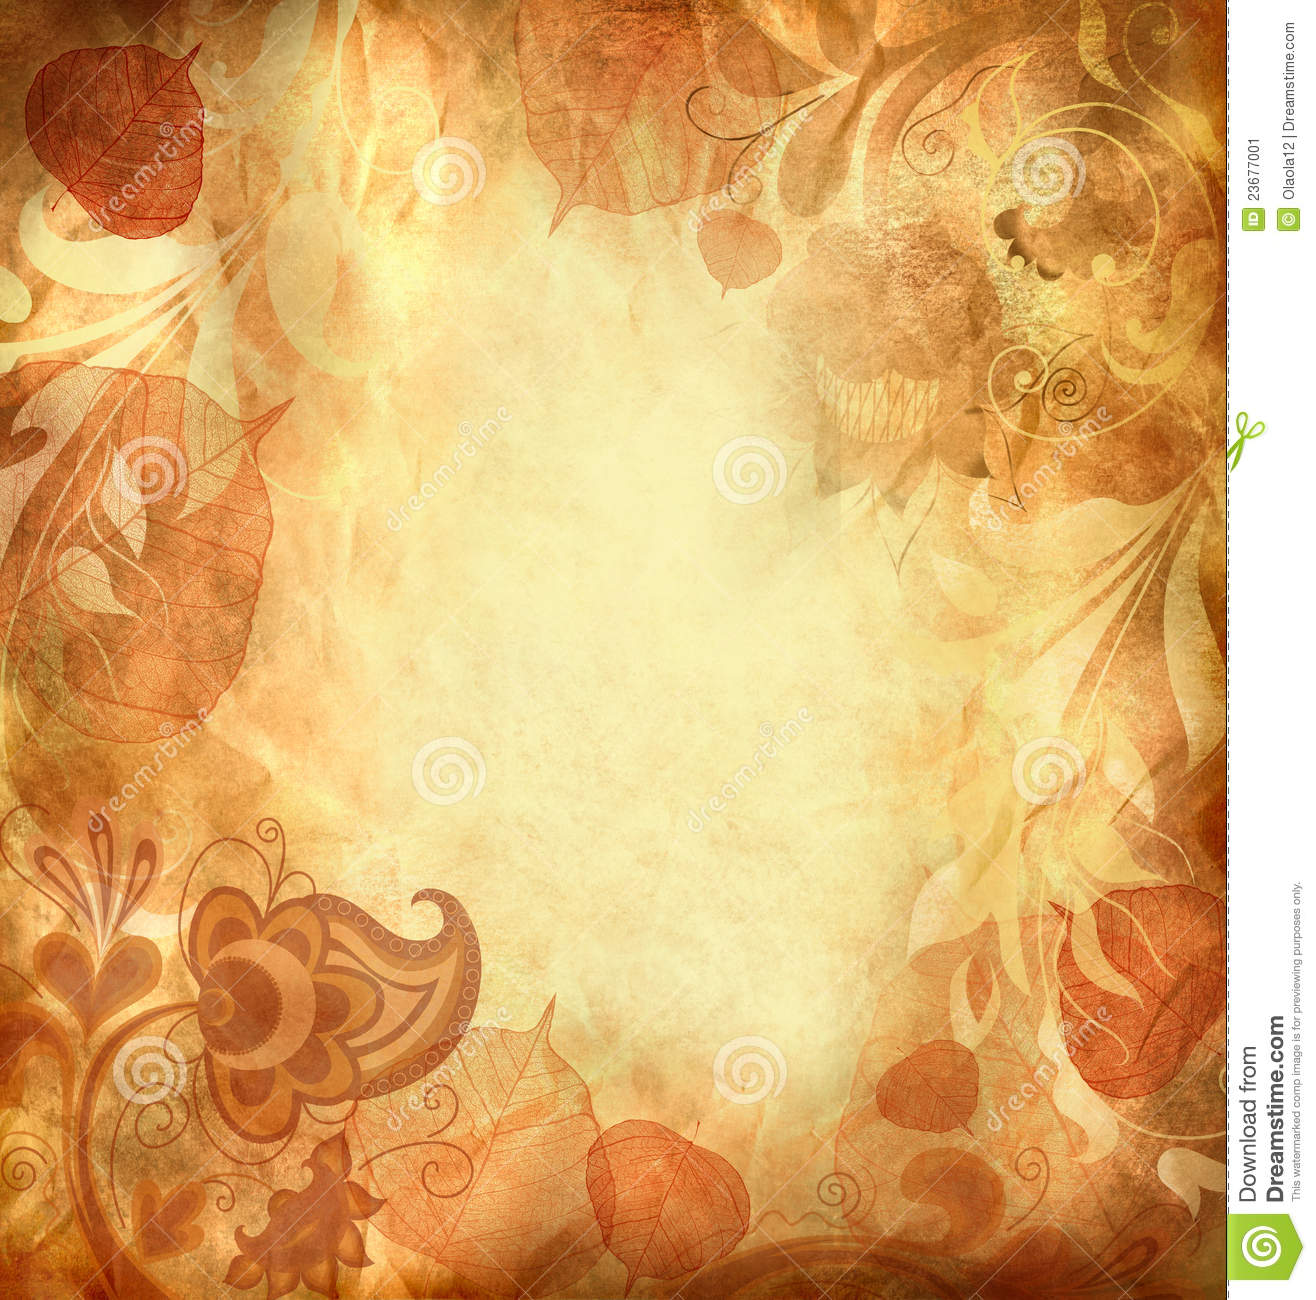 Hd Wallpaper Texture Fall Harvest Vintage Background With Leaves And Patterns Stock